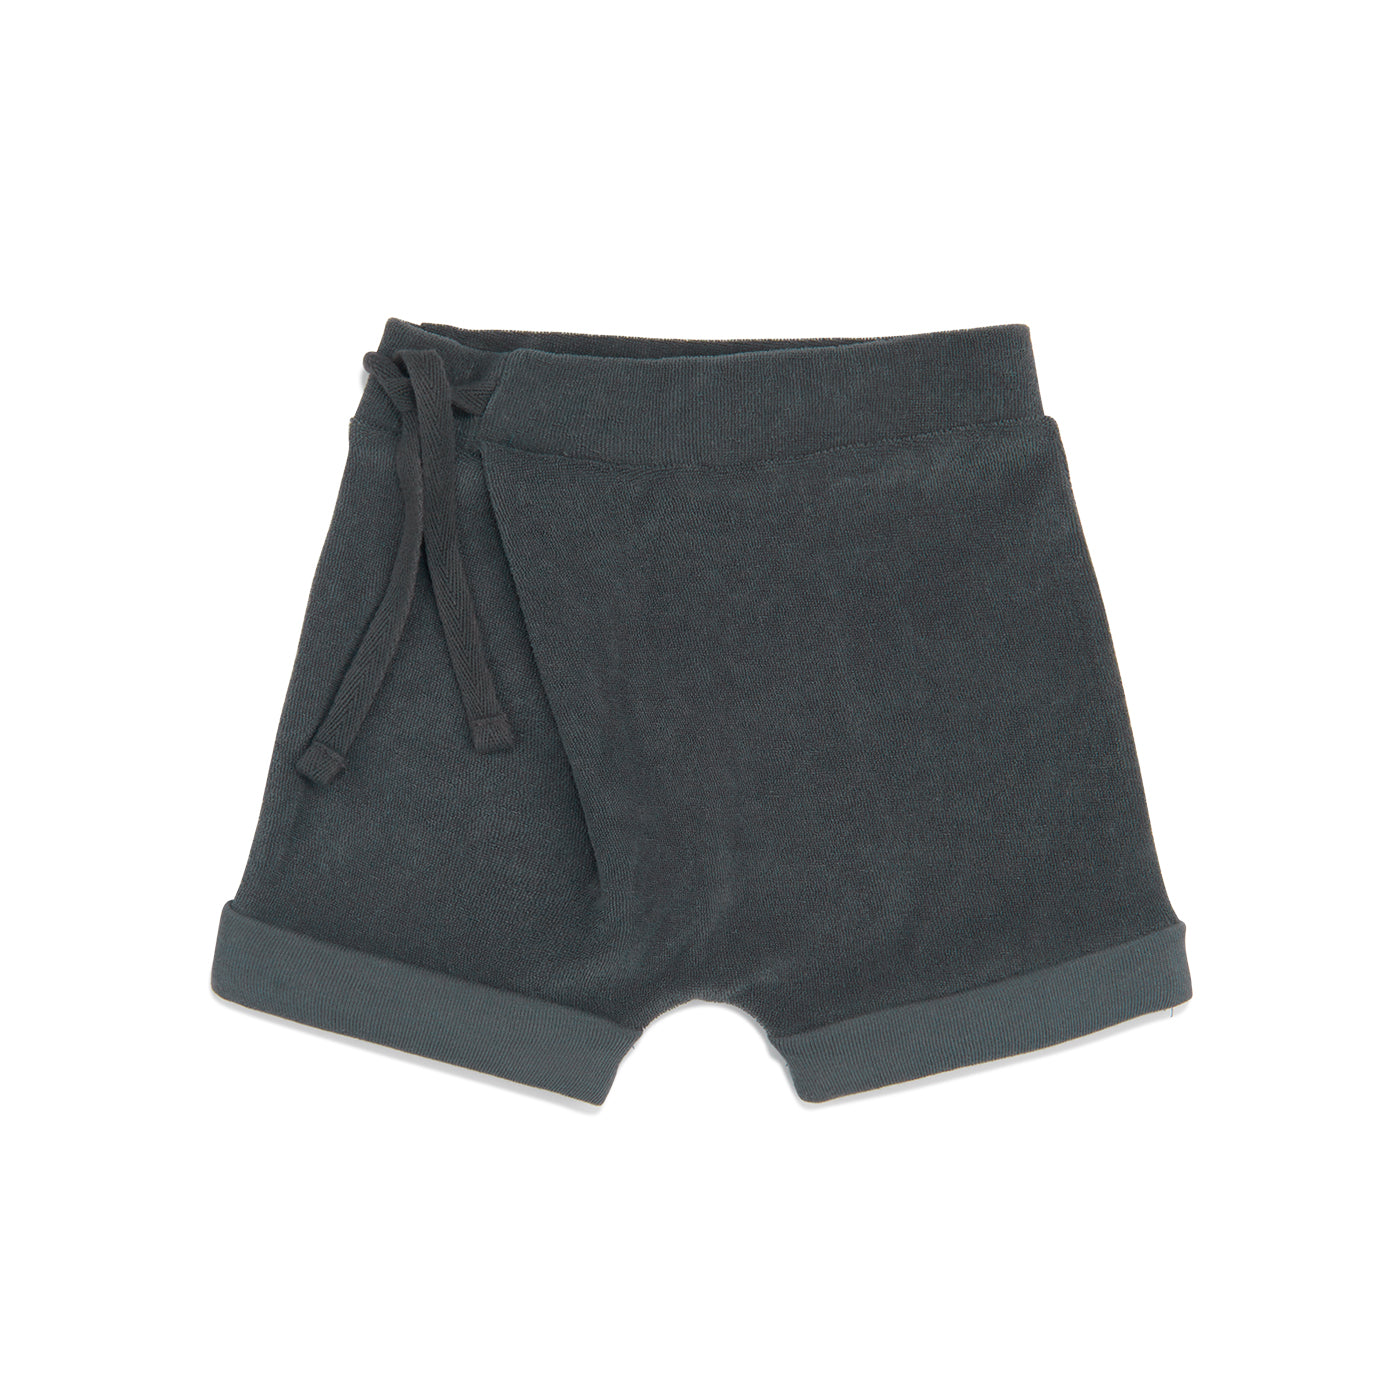 Frotté harem shorts in slate green